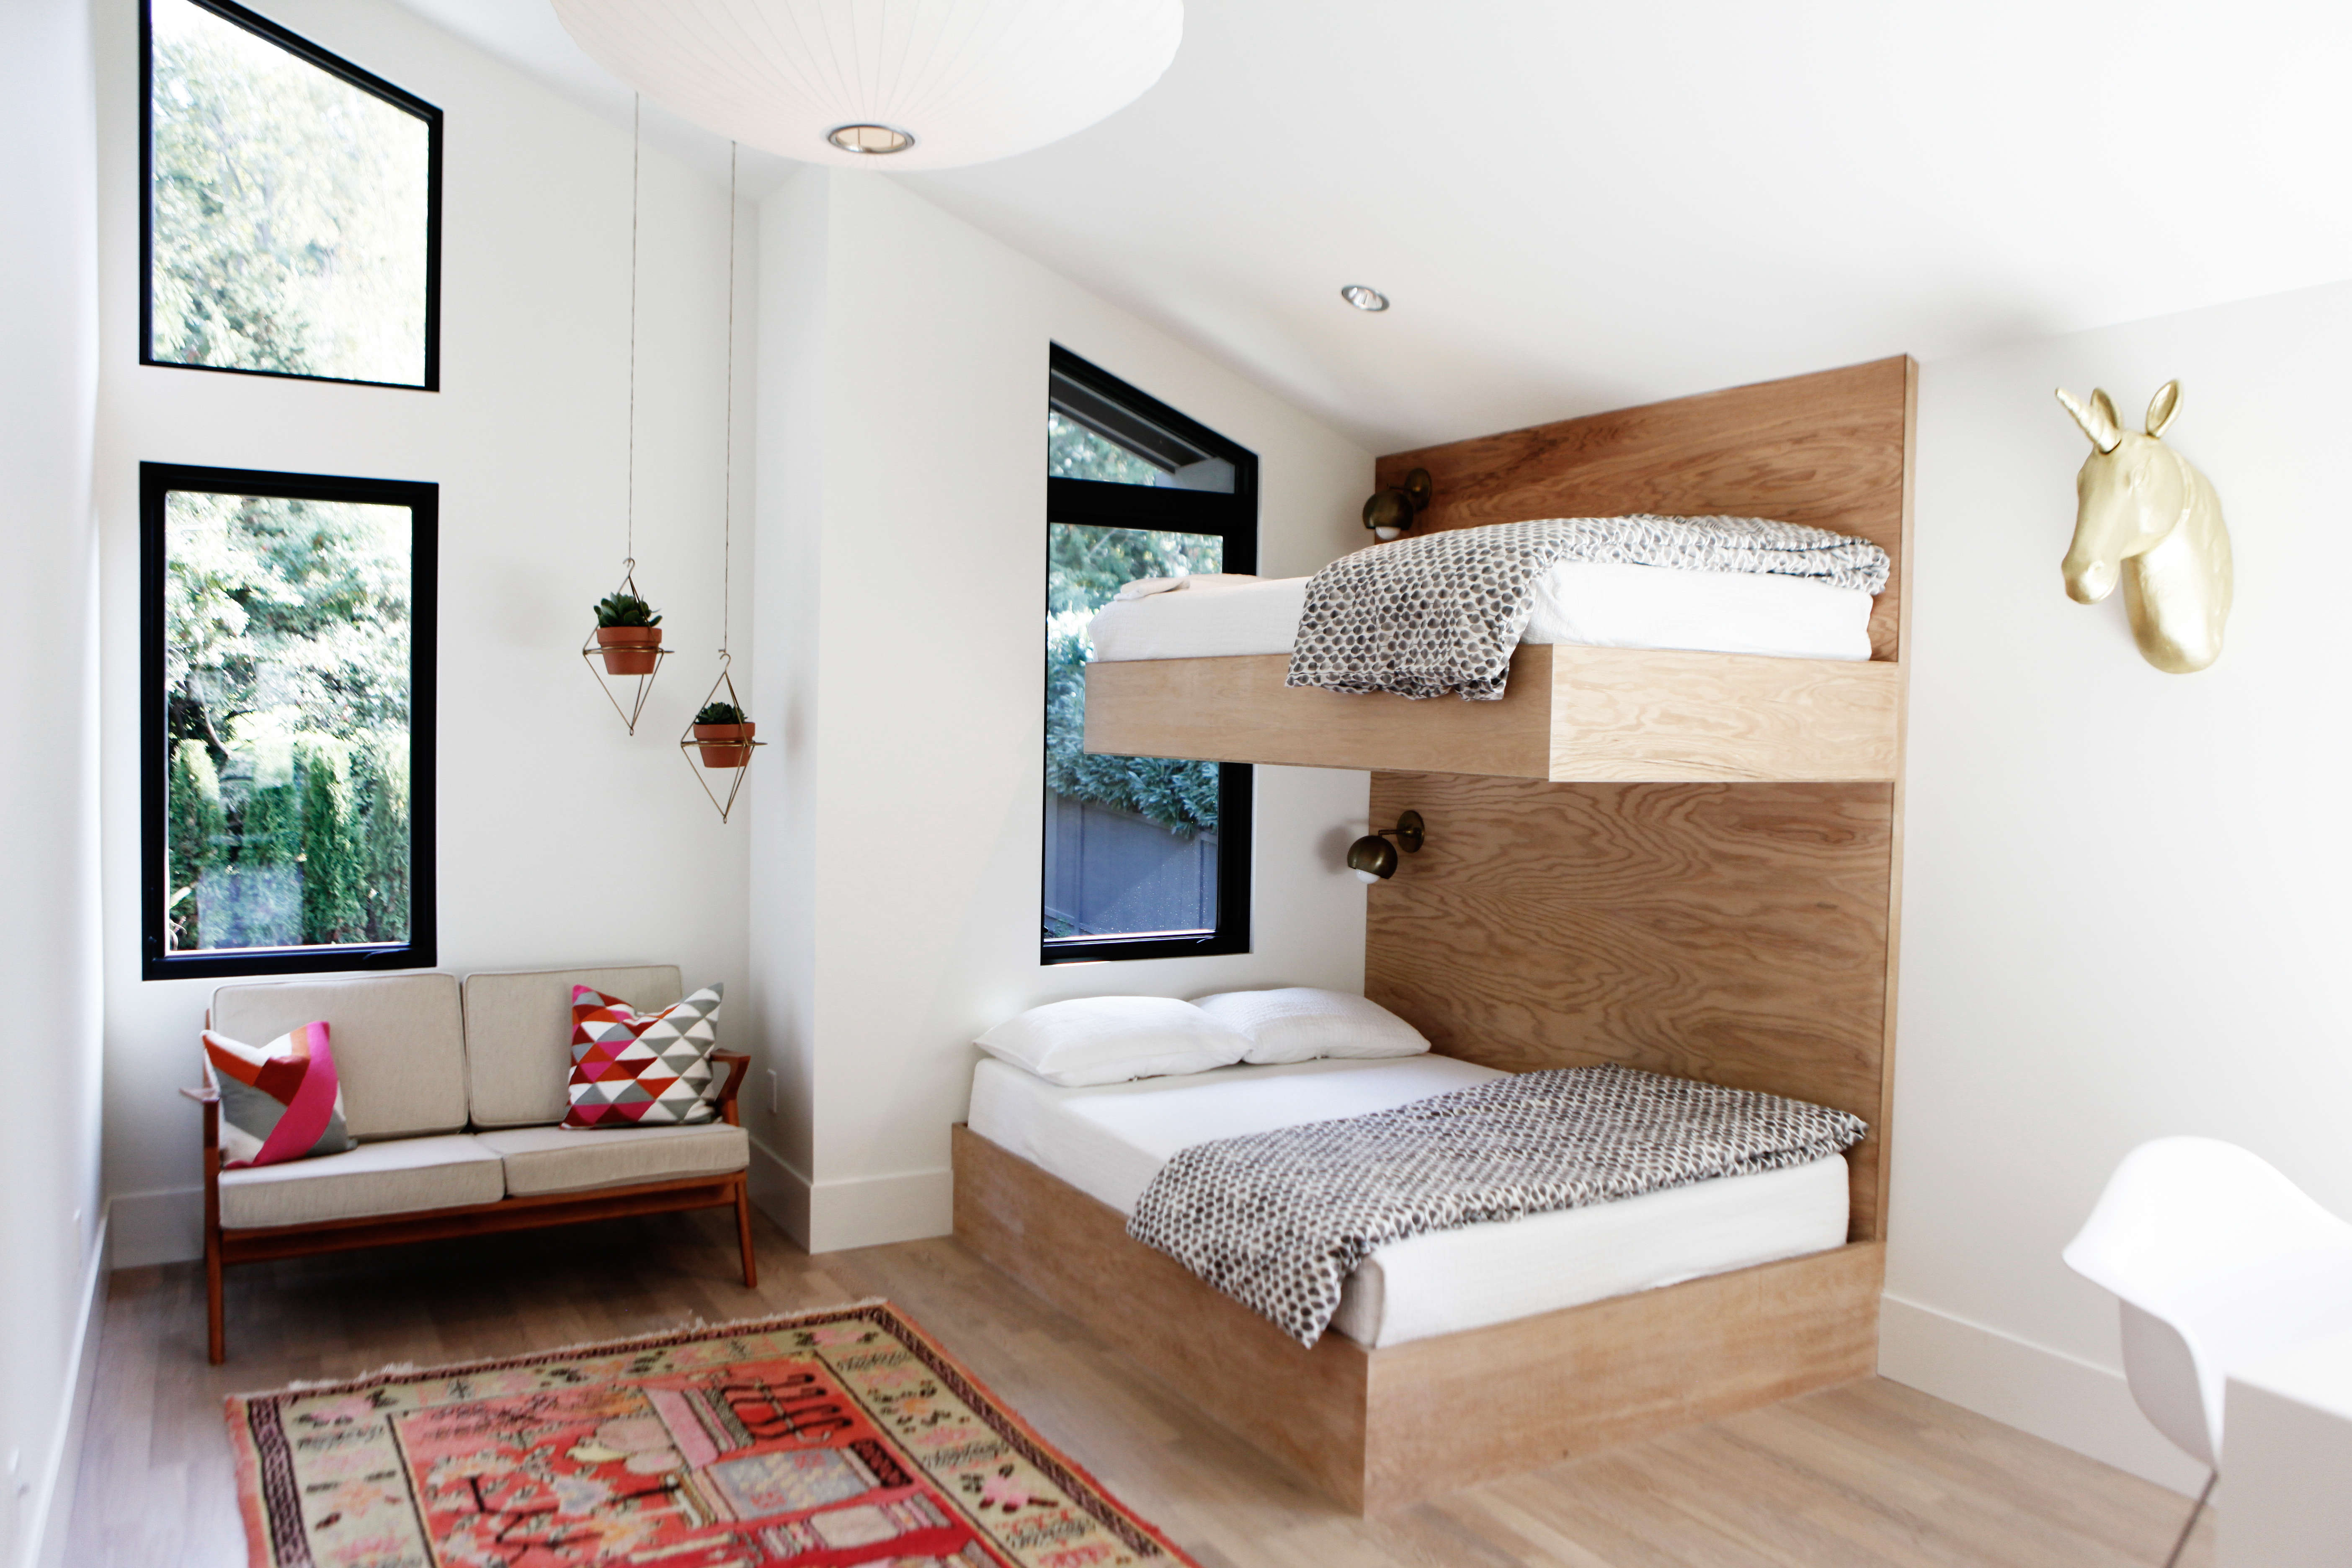 built in twin bunks in a kids' room by interior designer lisa staton and builde 19